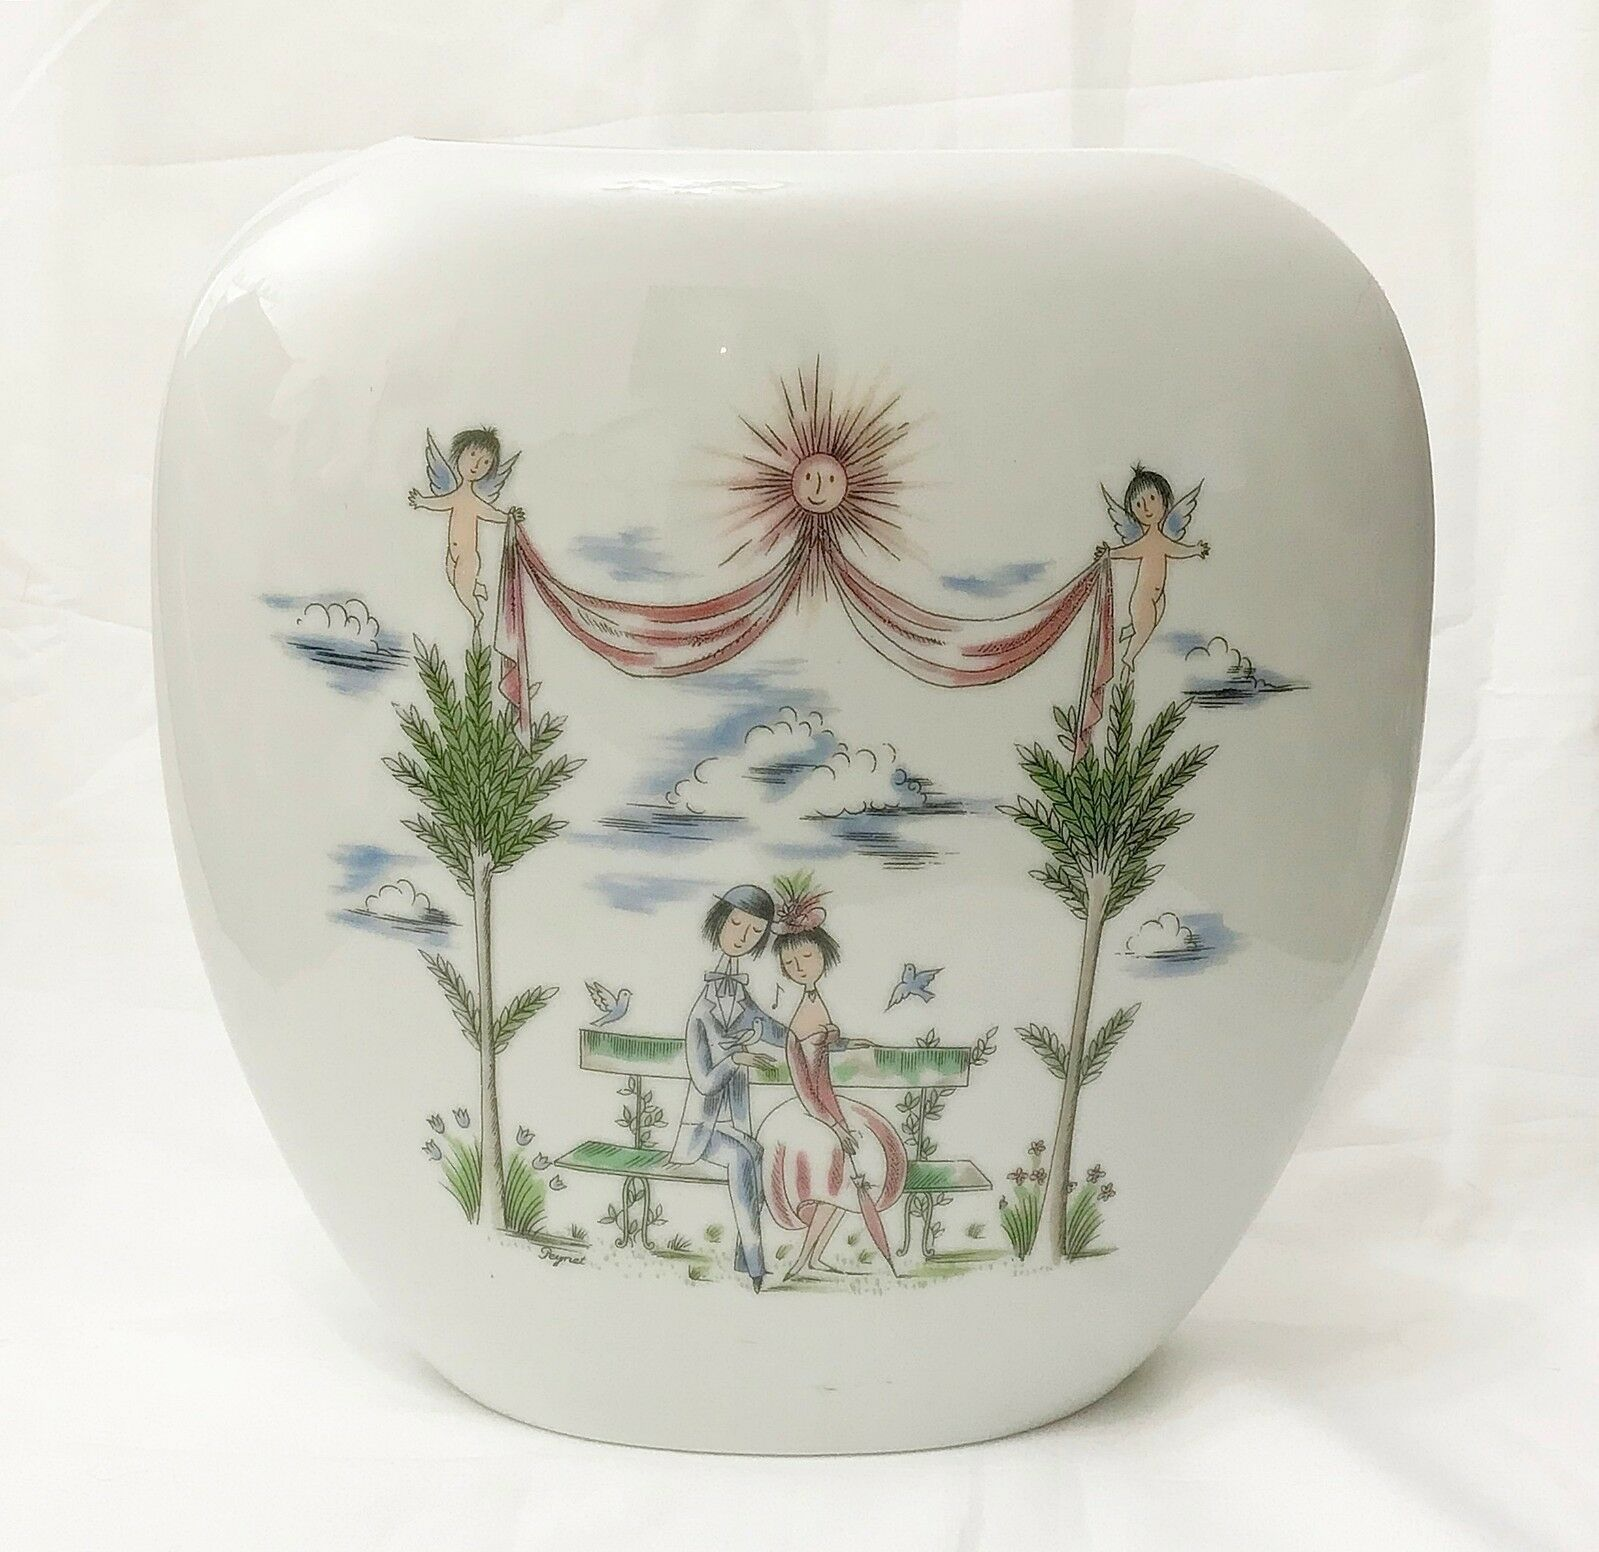 Primary image for Rosenthal Porcelain Vase Vintage Raymond Peynet The Lovers Hand Painted MCM